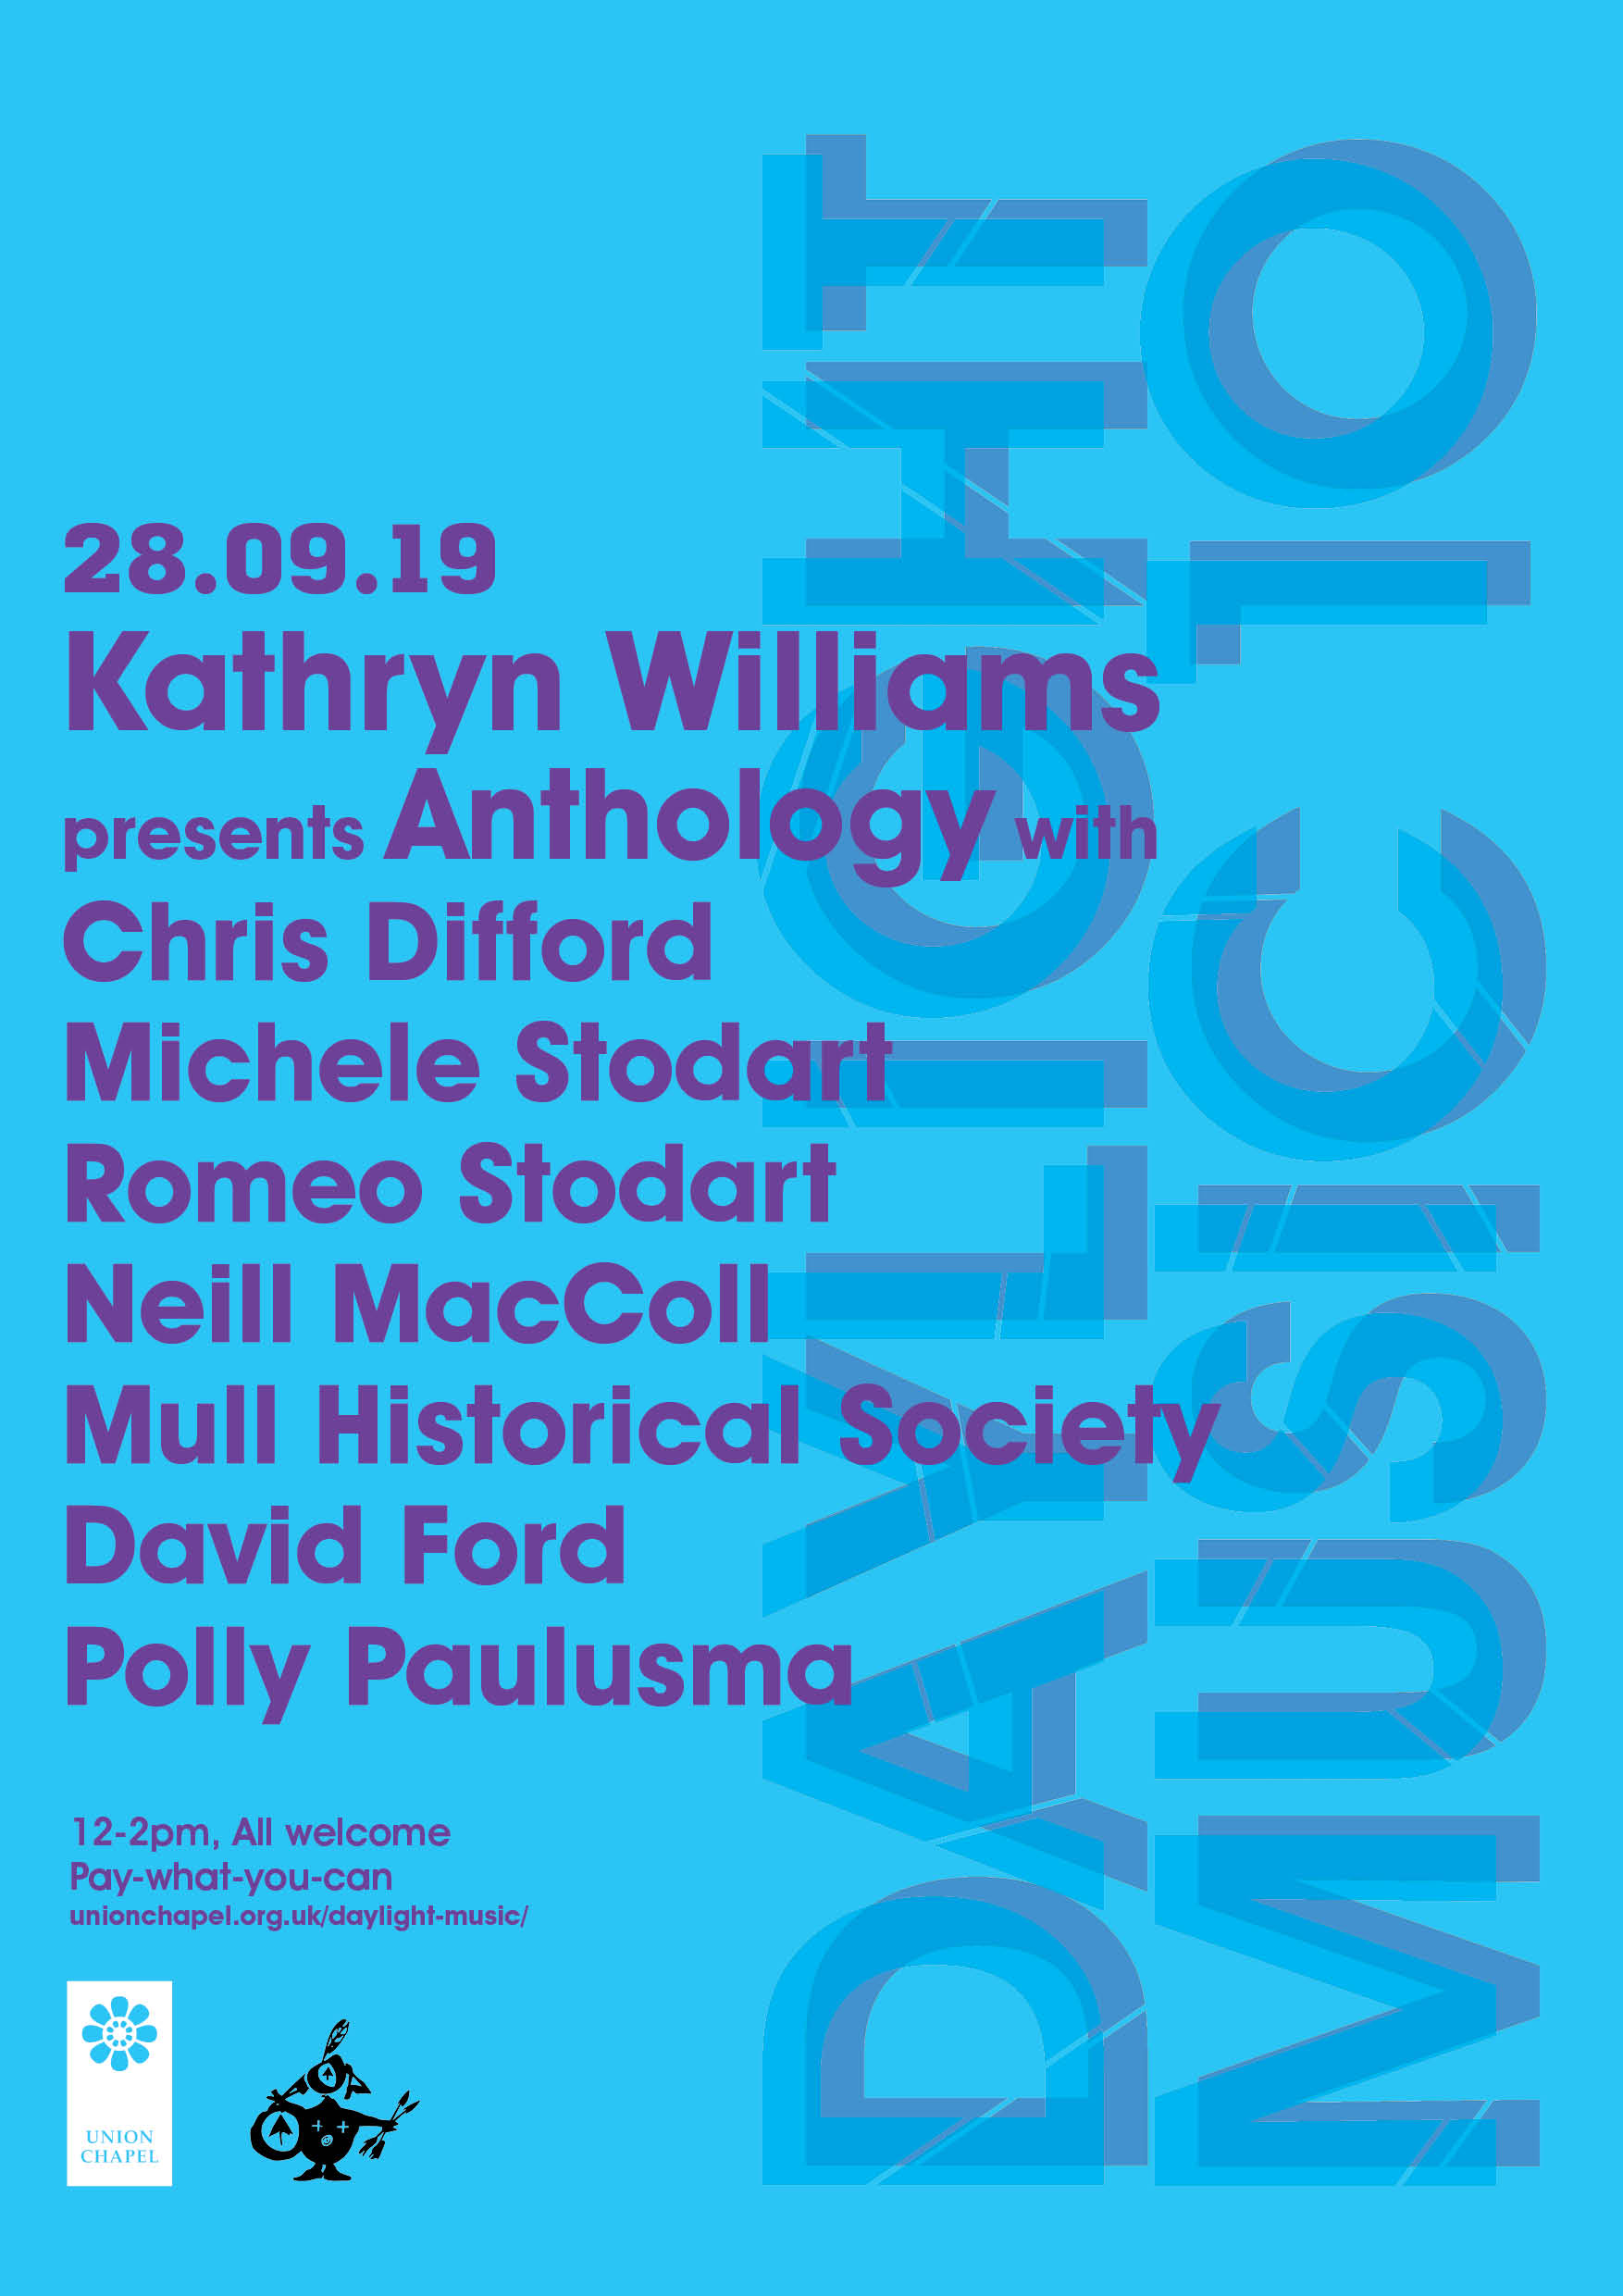 Colin / MHS joins Kathryn William, Chris Difford and The Magic Numbers at Union Chapel, London Sat 28th Sept